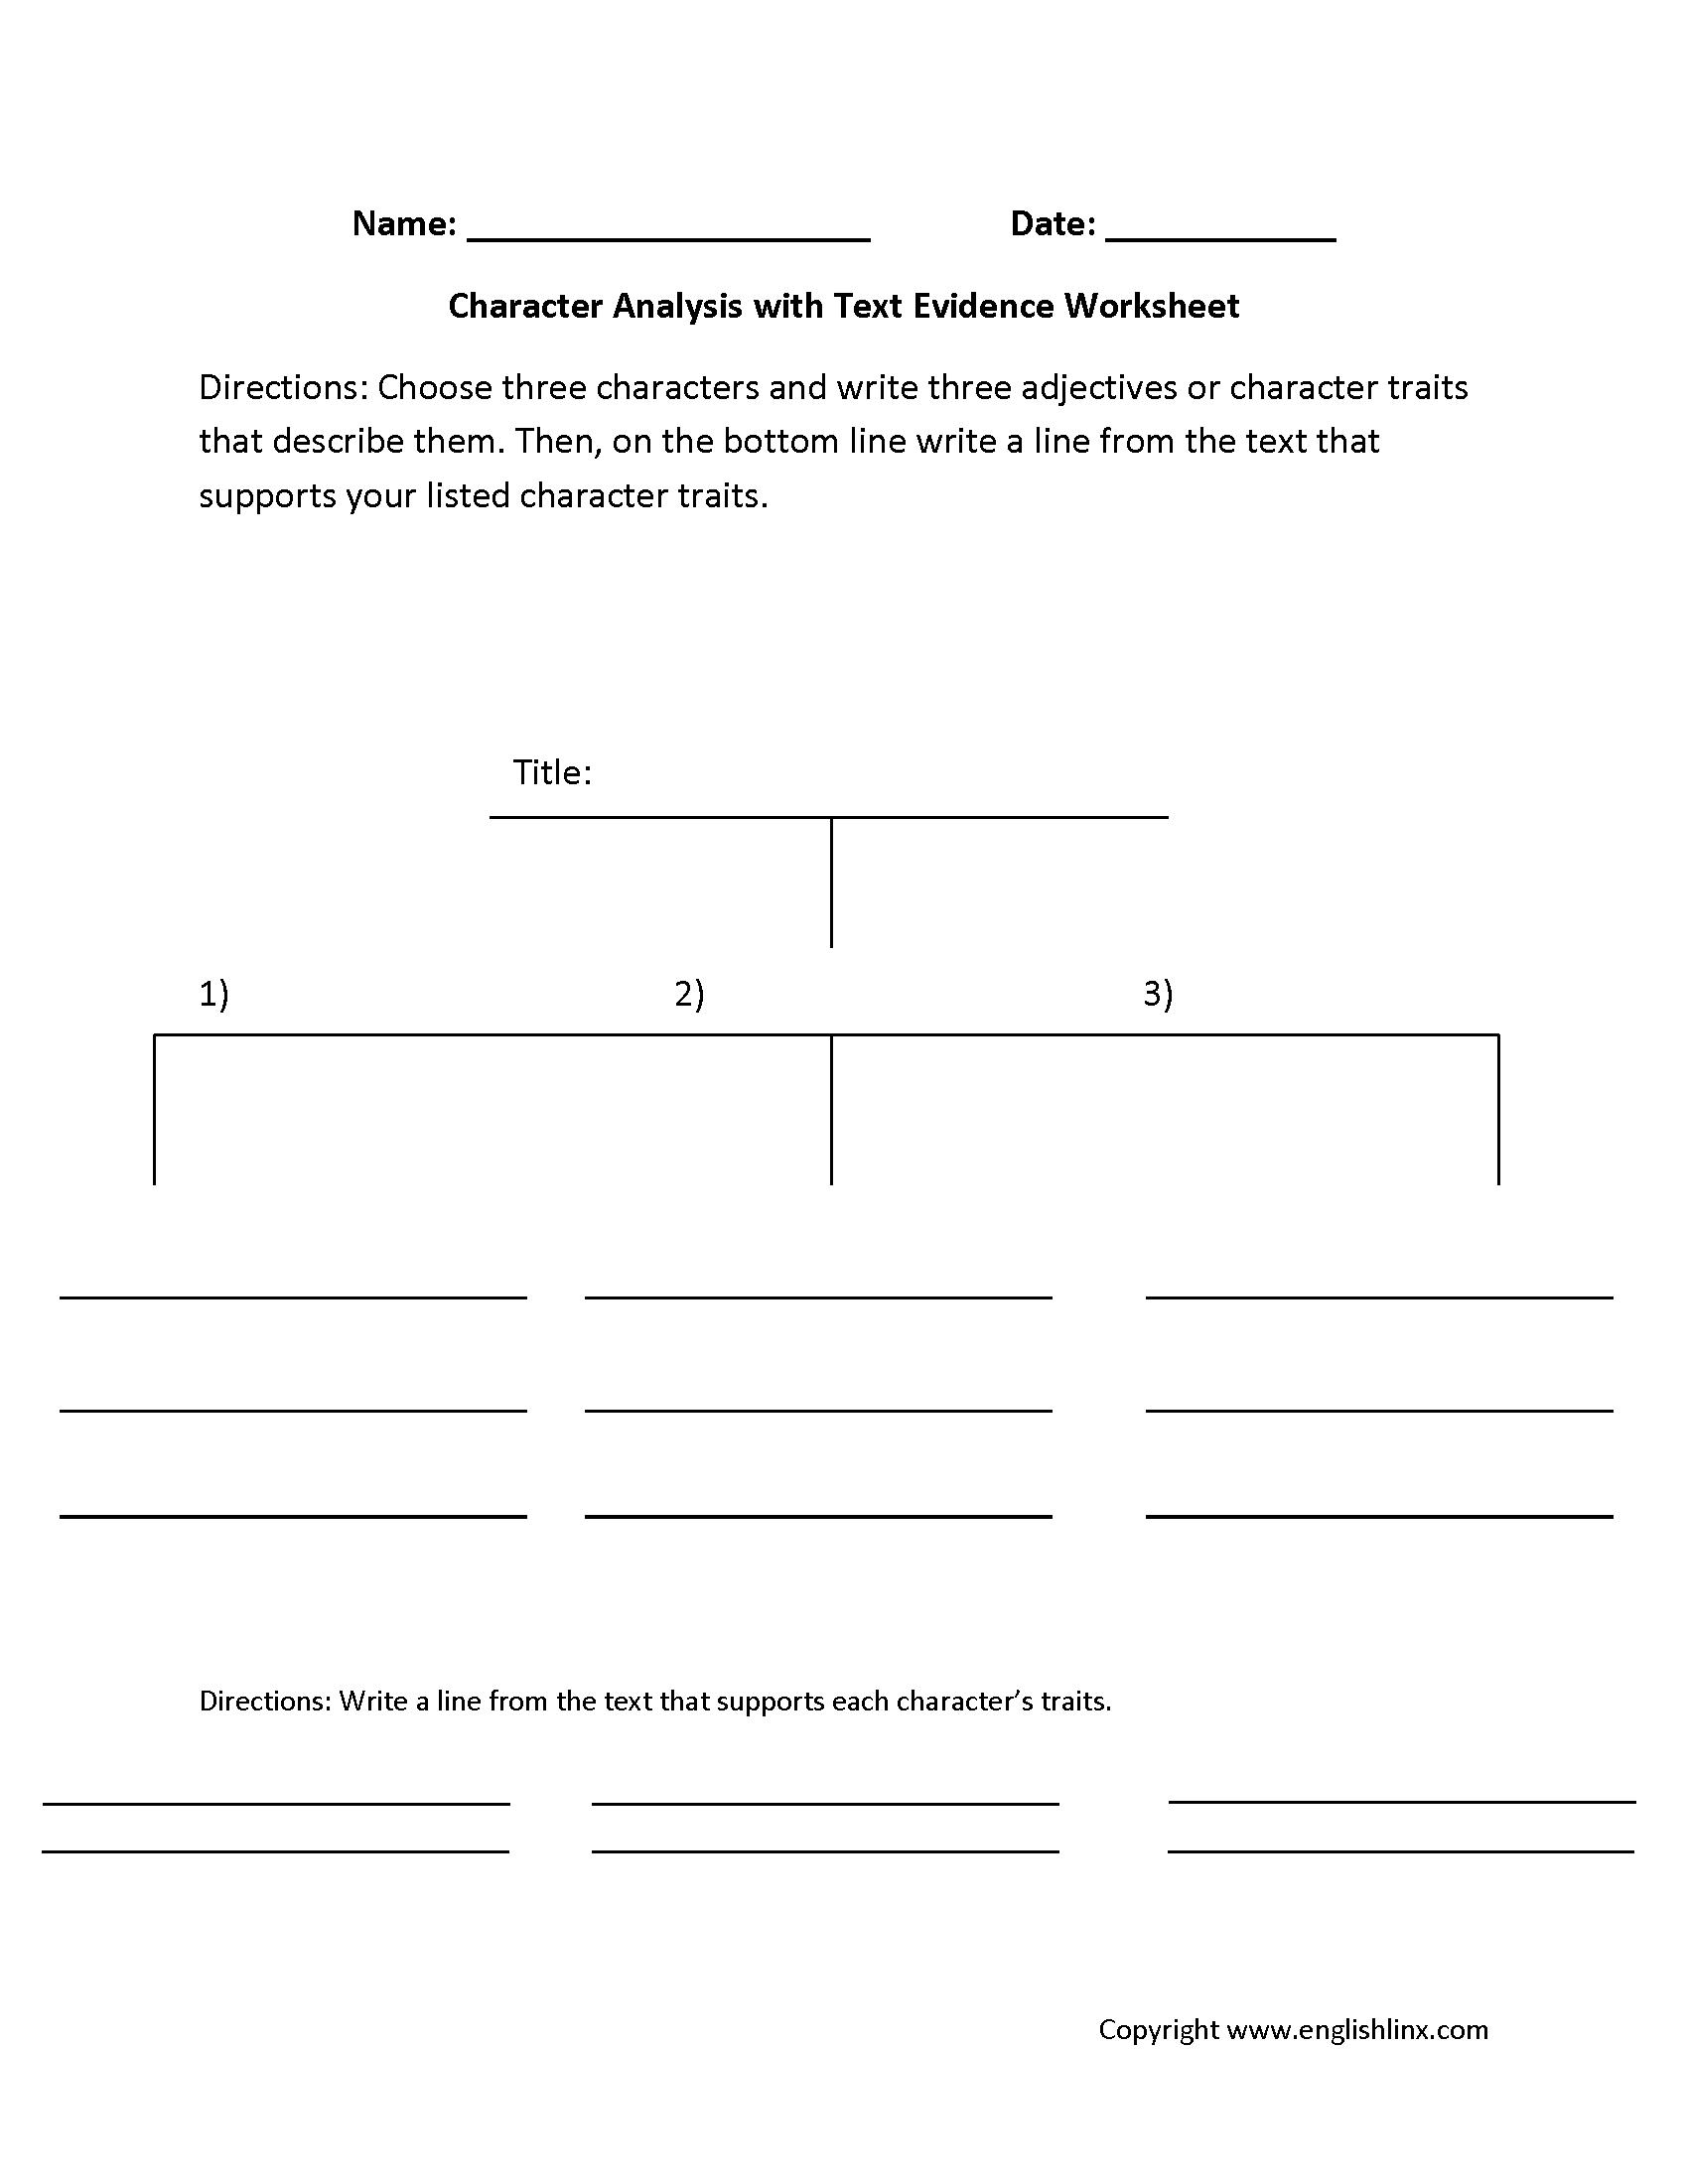 Characterysis Text Evidence Worksheets